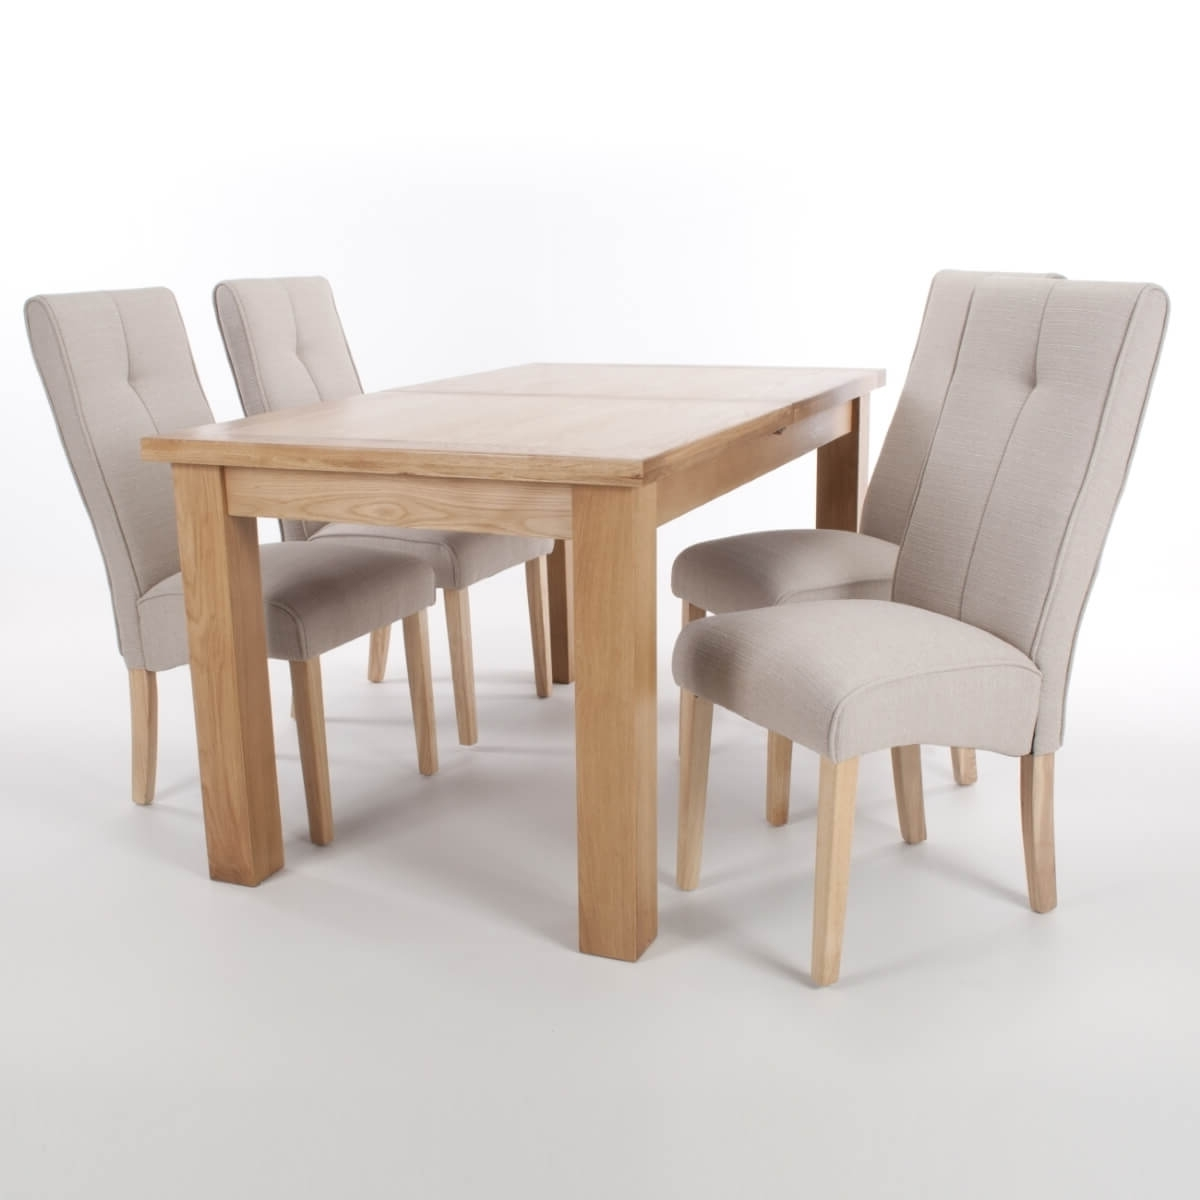 Cream Dining Tables And Chairs Within Well Known Dining Set – Solid Oak Extending Dining Table And 4 Linea Cream (View 13 of 25)